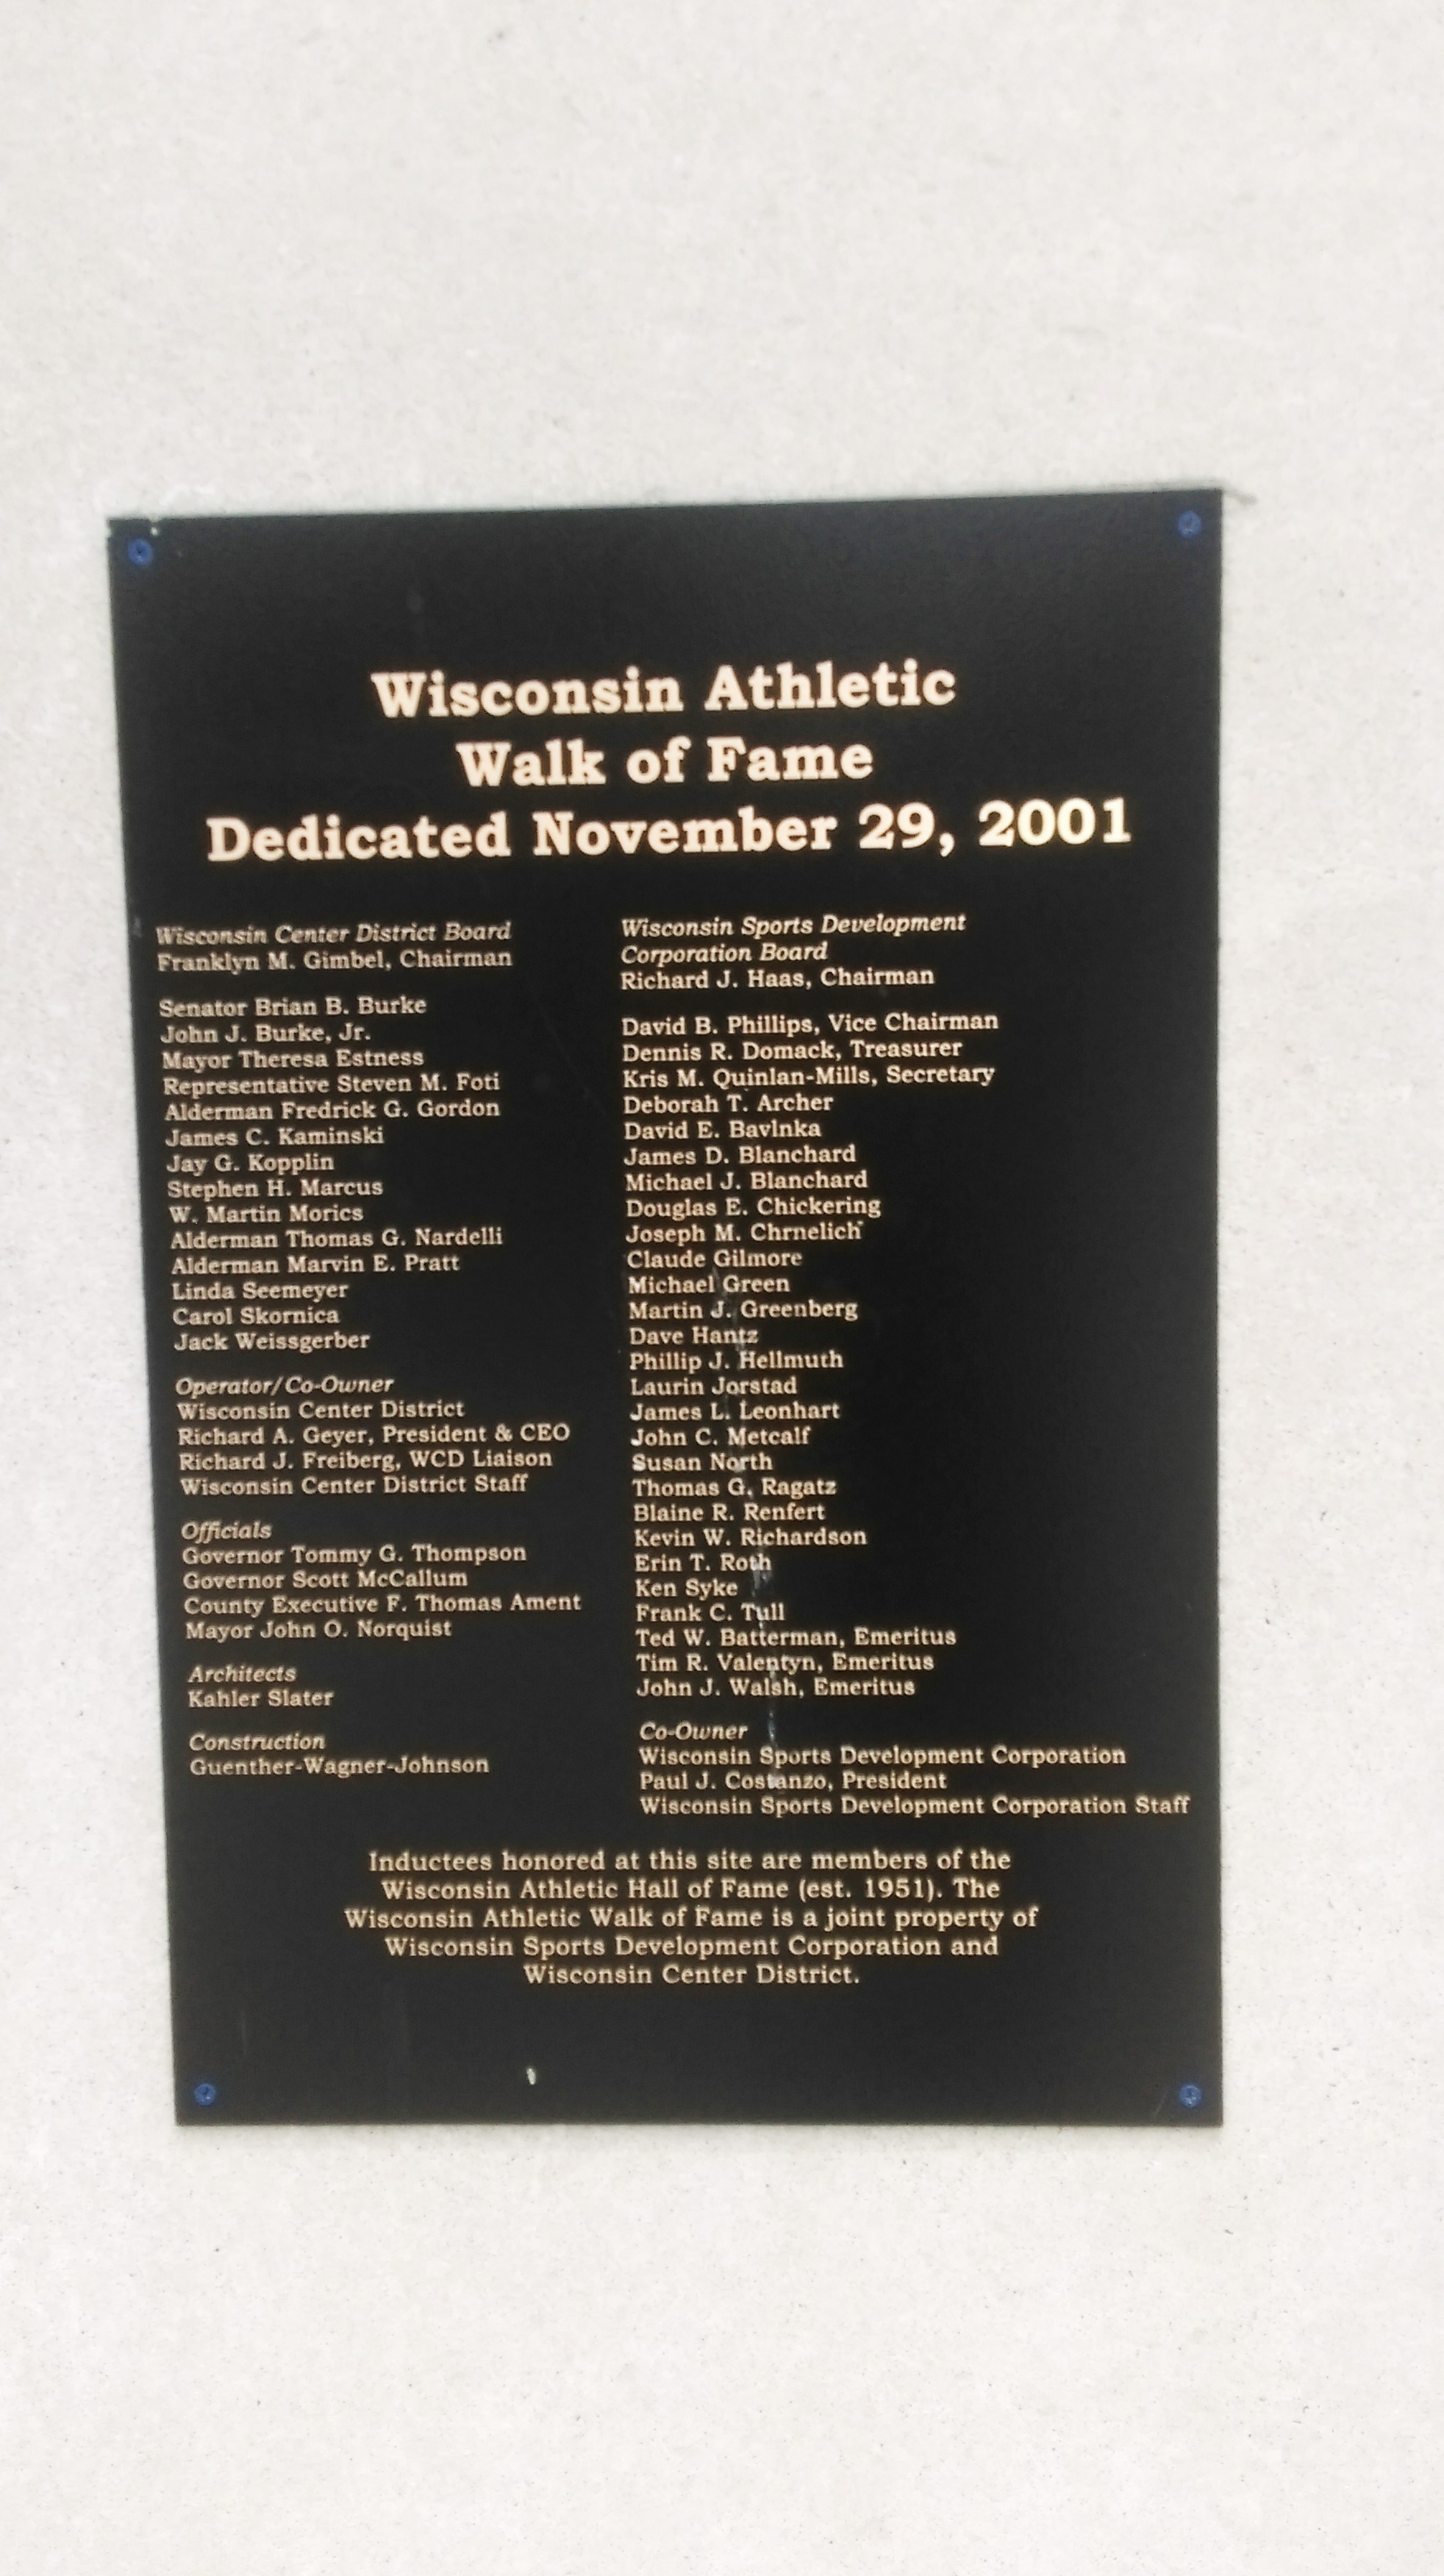 Wisconsin Athletic Hall of Fame Plaque